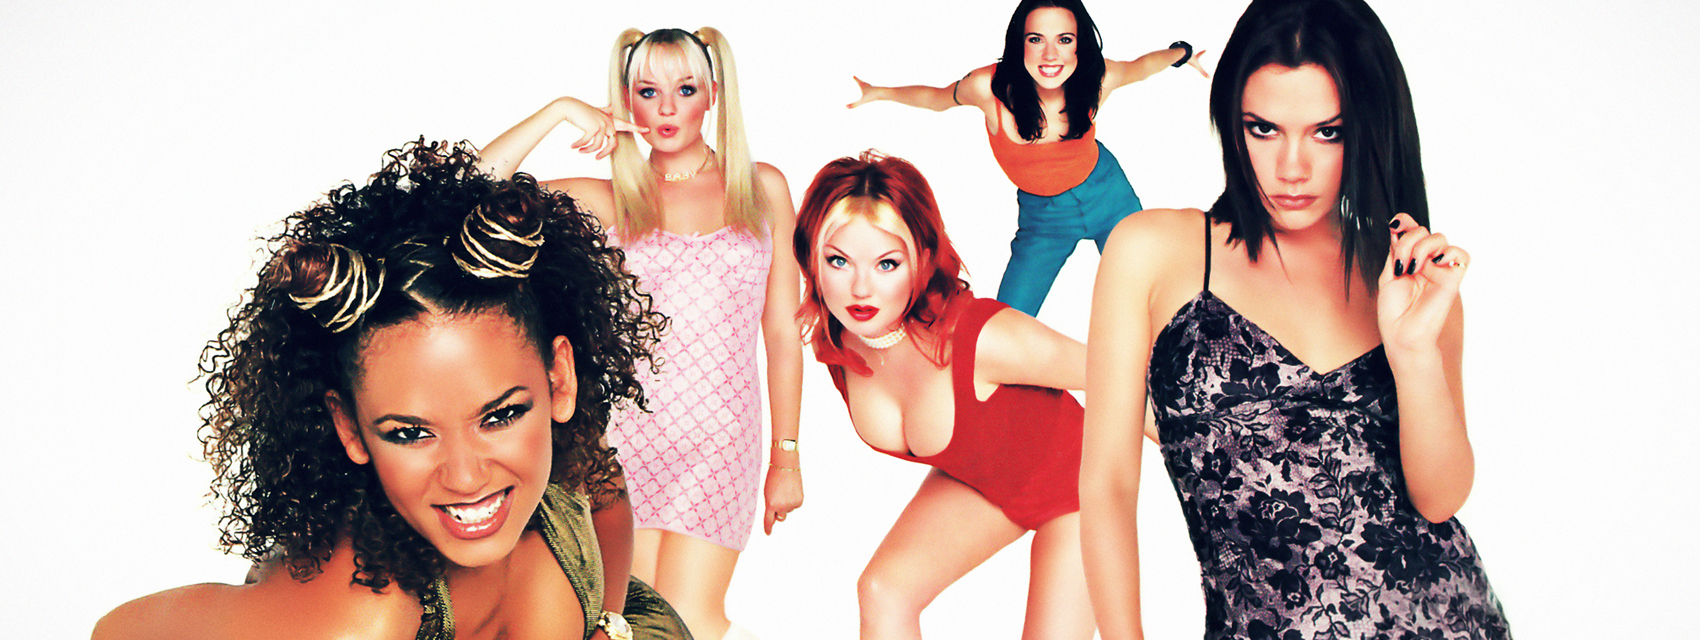 Donald trump hits on spice girls